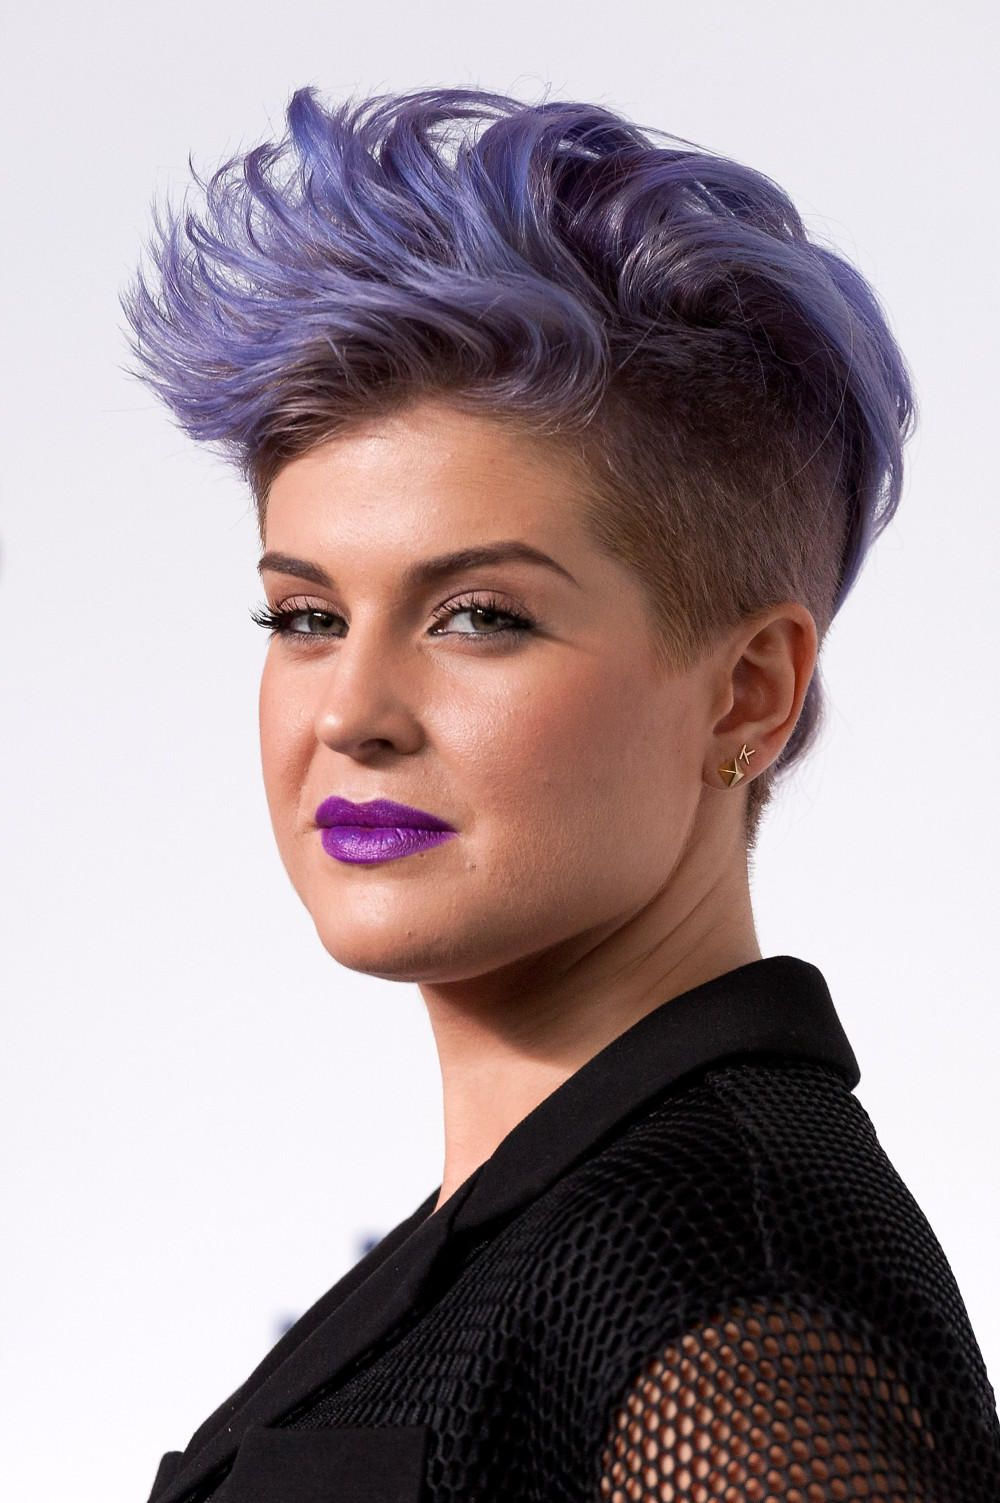 Kellyosbourne (1000×1503) | Hair | Pinterest Pertaining To Kelly Osbourne Short Haircuts (View 12 of 25)